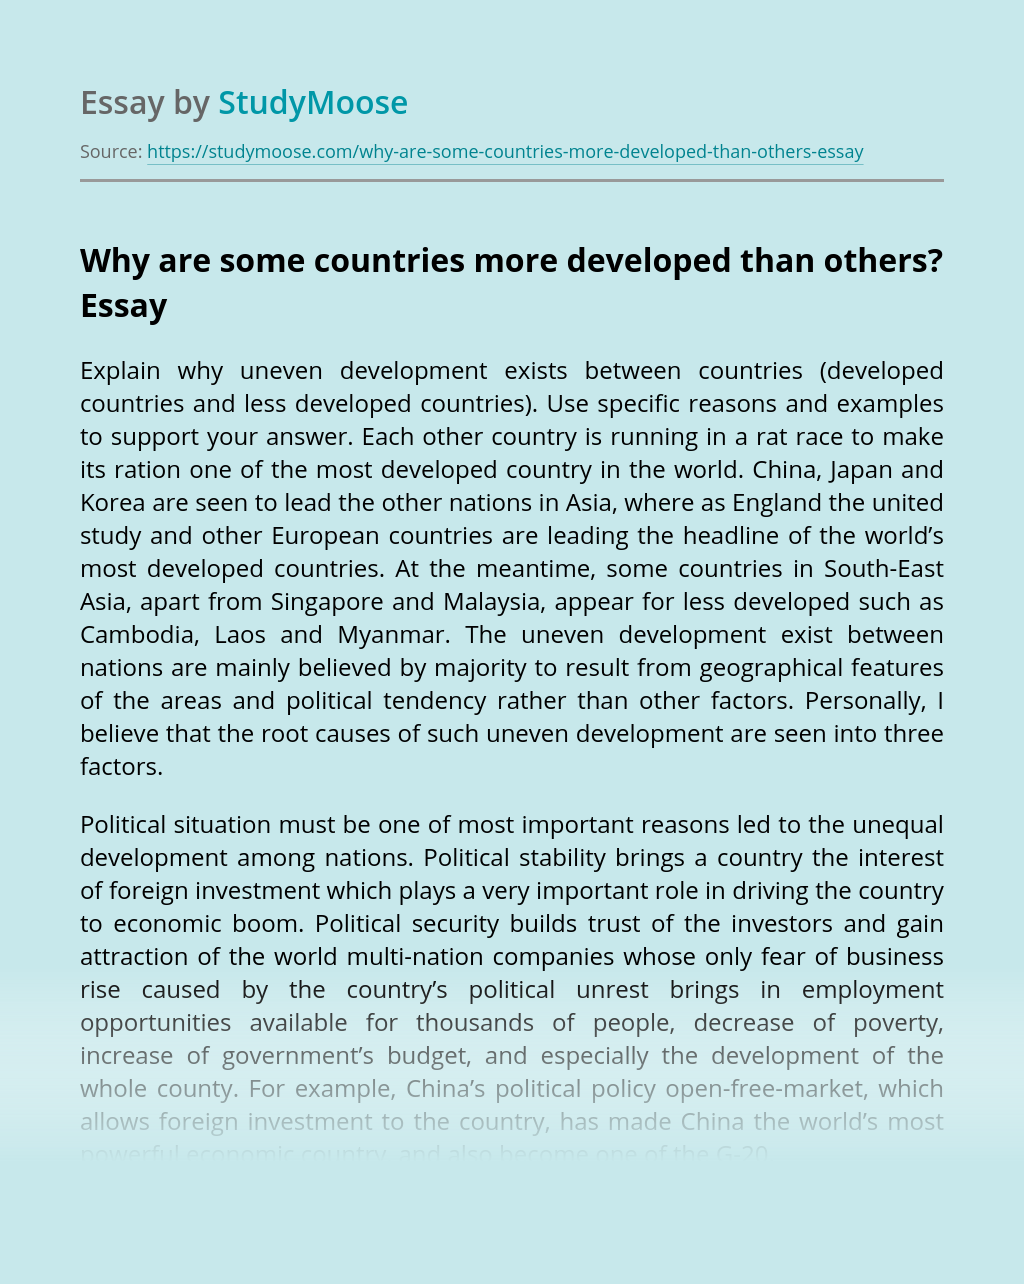 Why are some countries more developed than others?